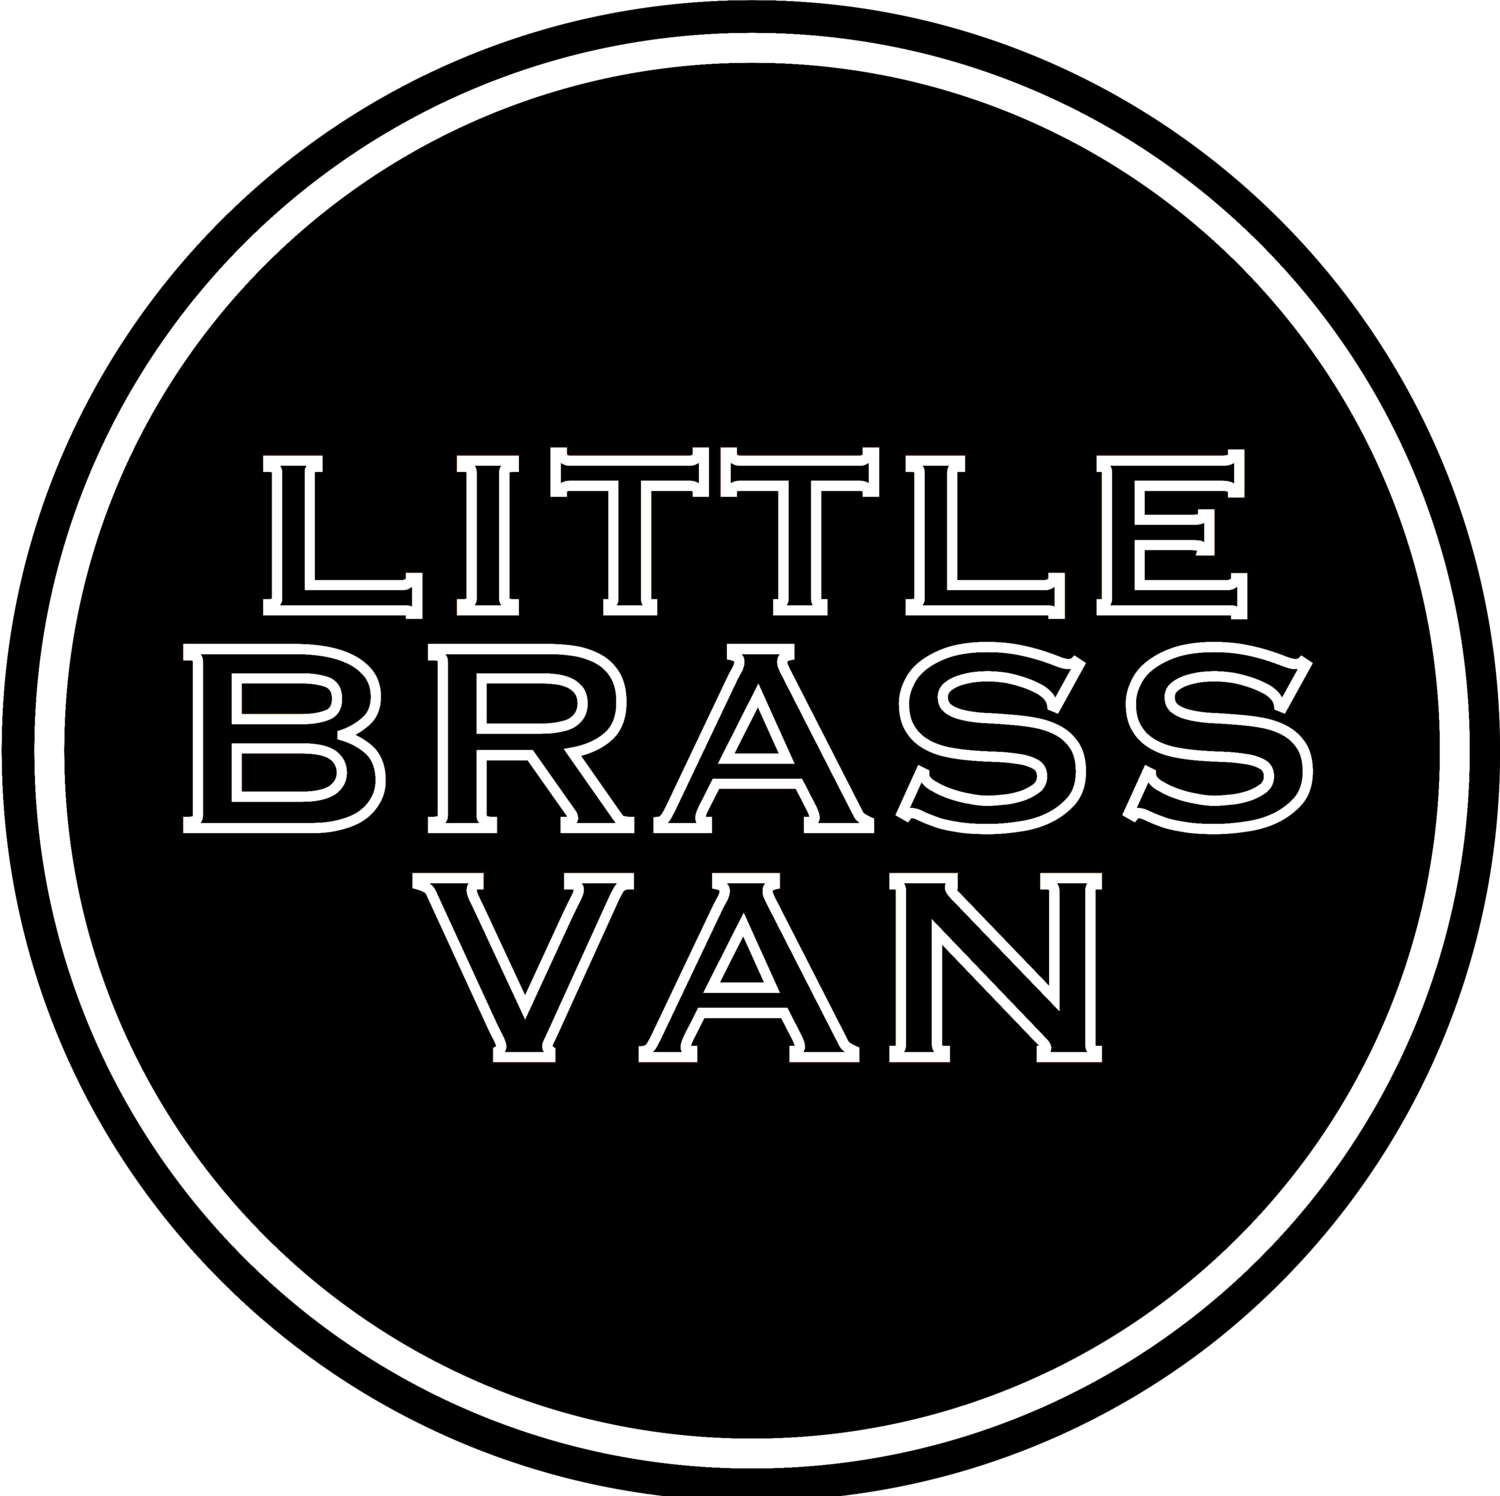 Little Brass Van